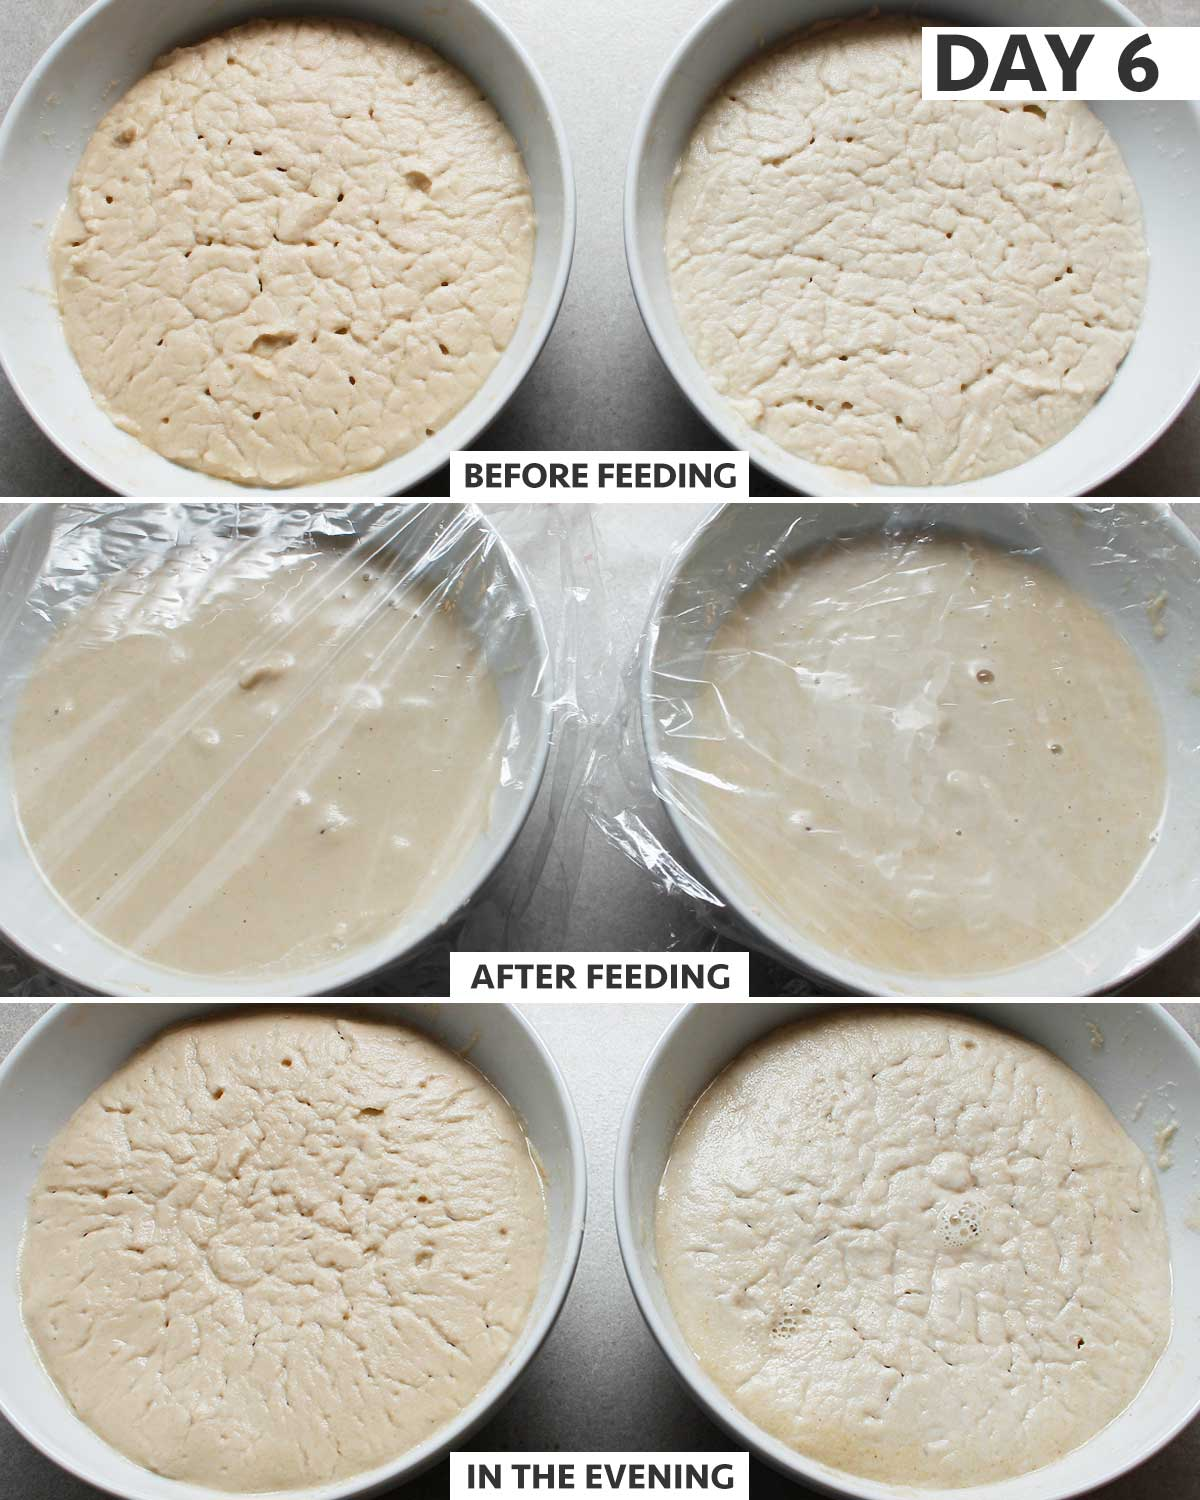 Day 6 (am) of 8: gluten-free sourdough starter step-by-step process